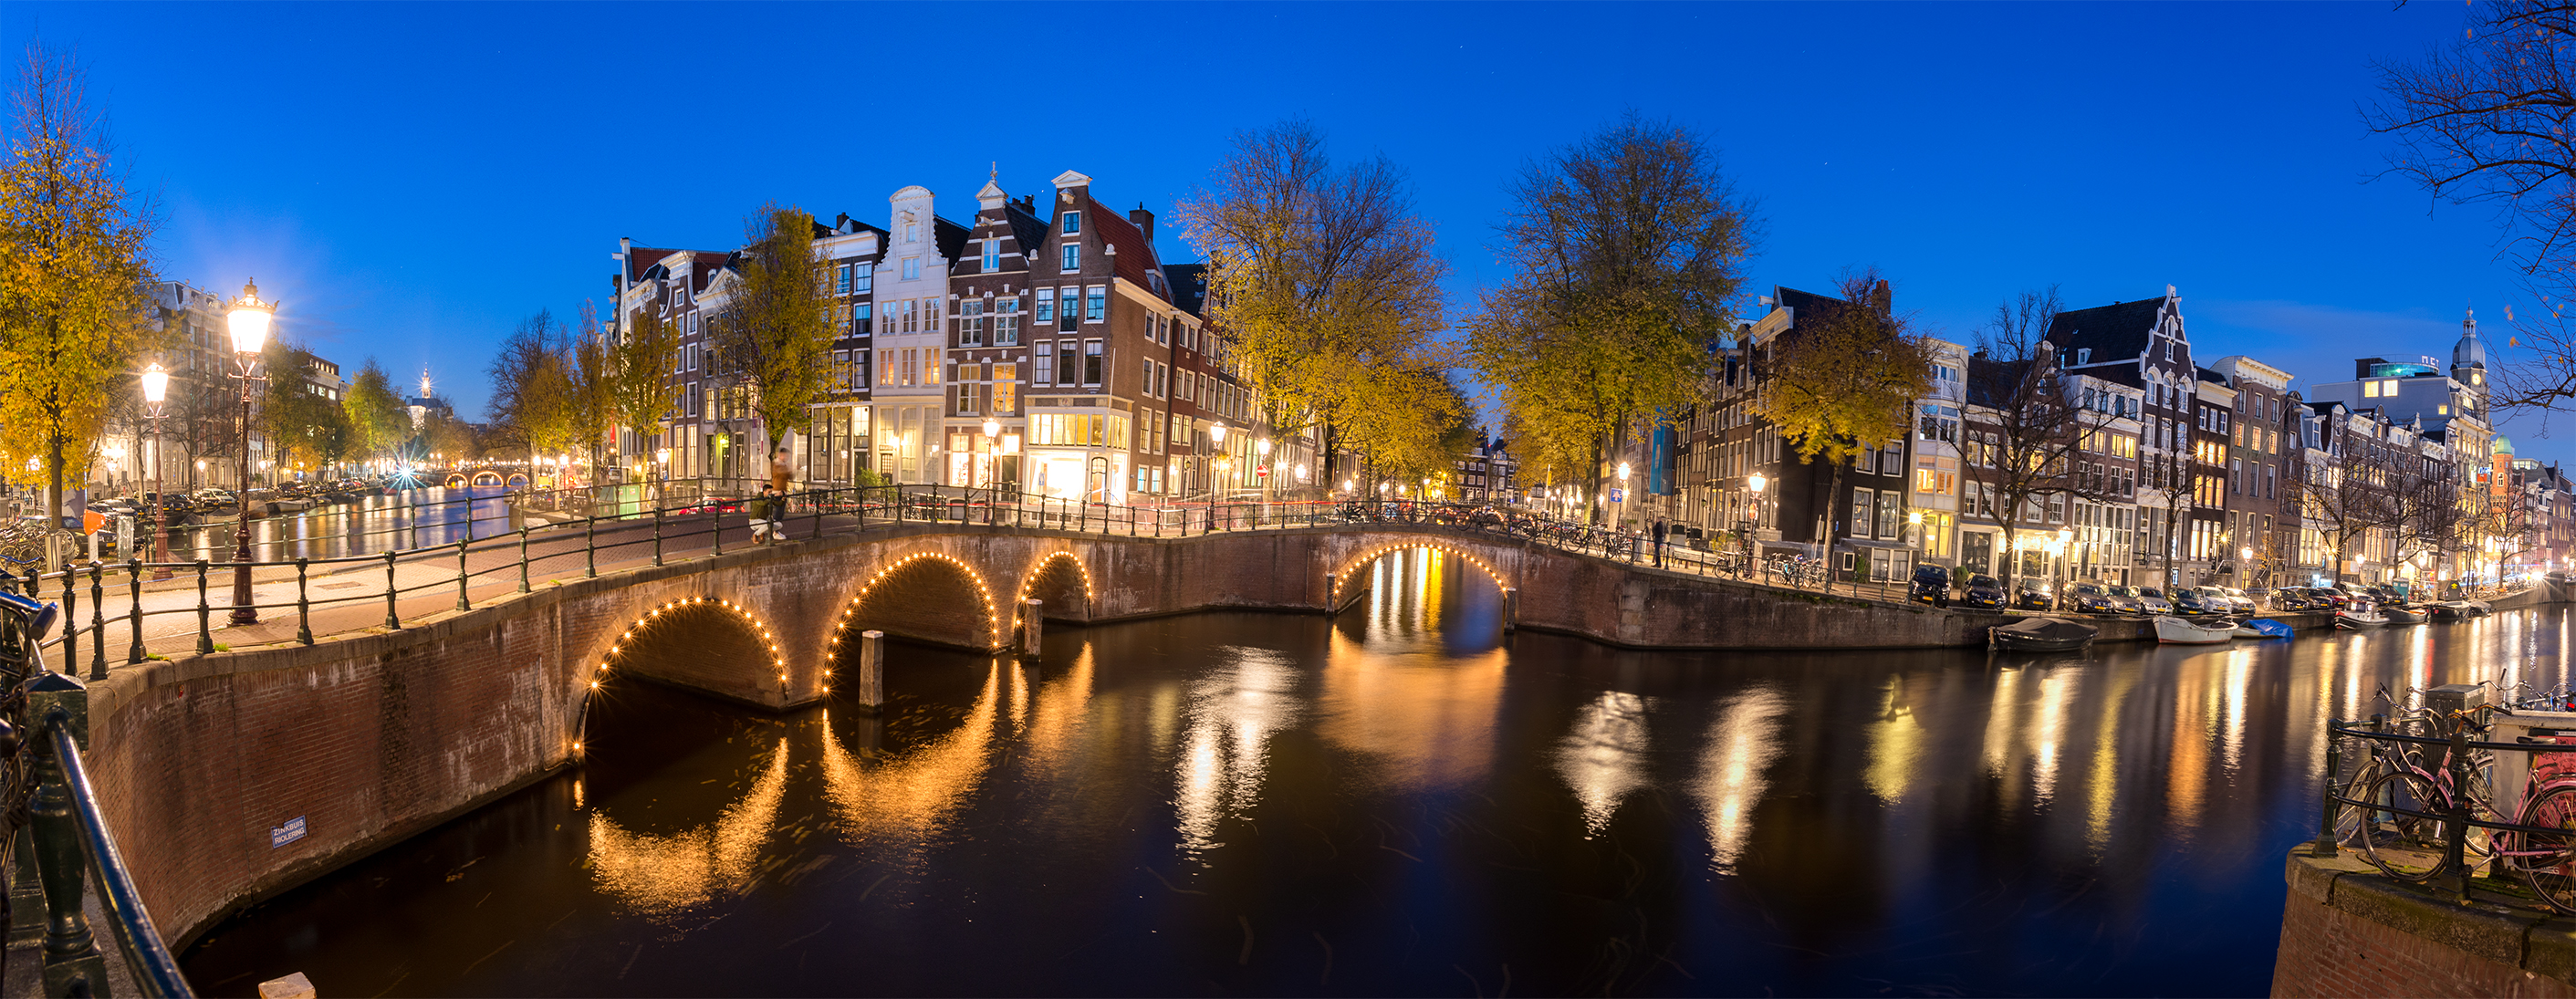 Amsterdam by Night 2018